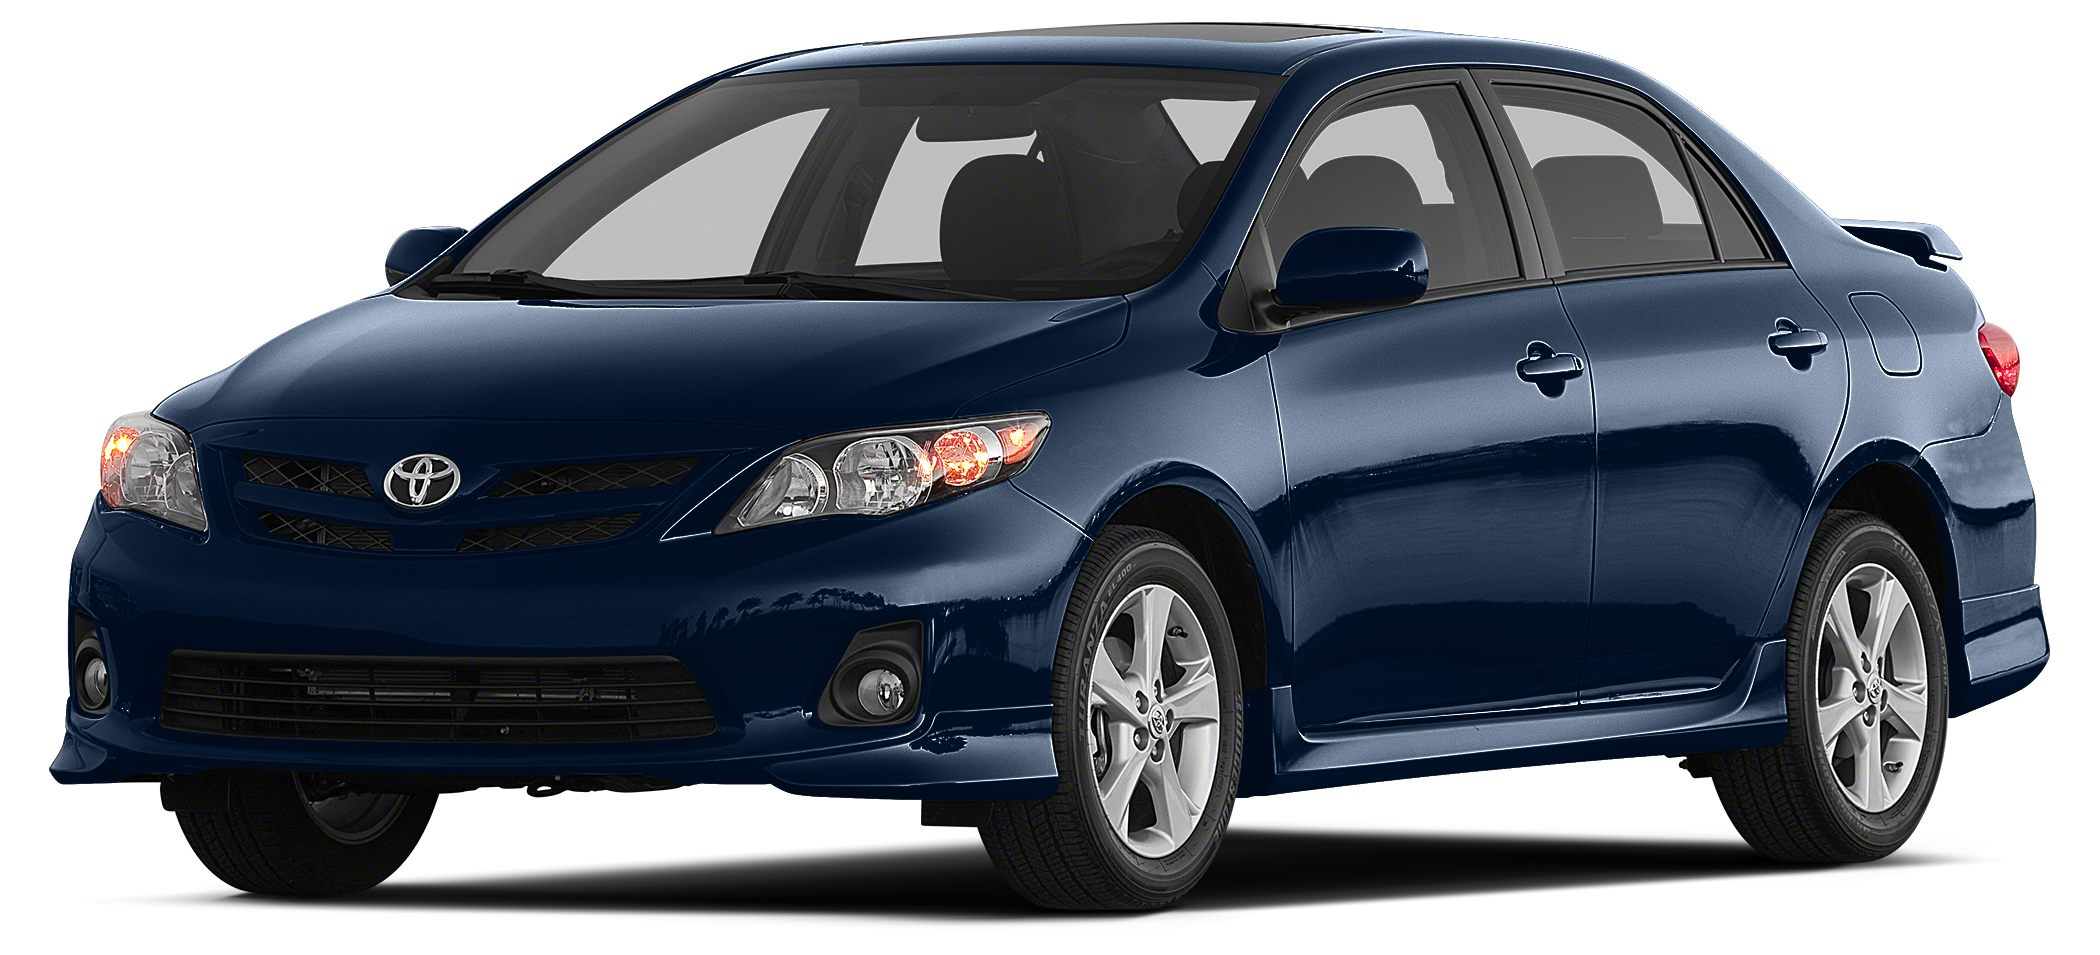 2012 Toyota Corolla S Real Winner Youll NEVER pay too much at Route 44 Toyota Scion Imagine your